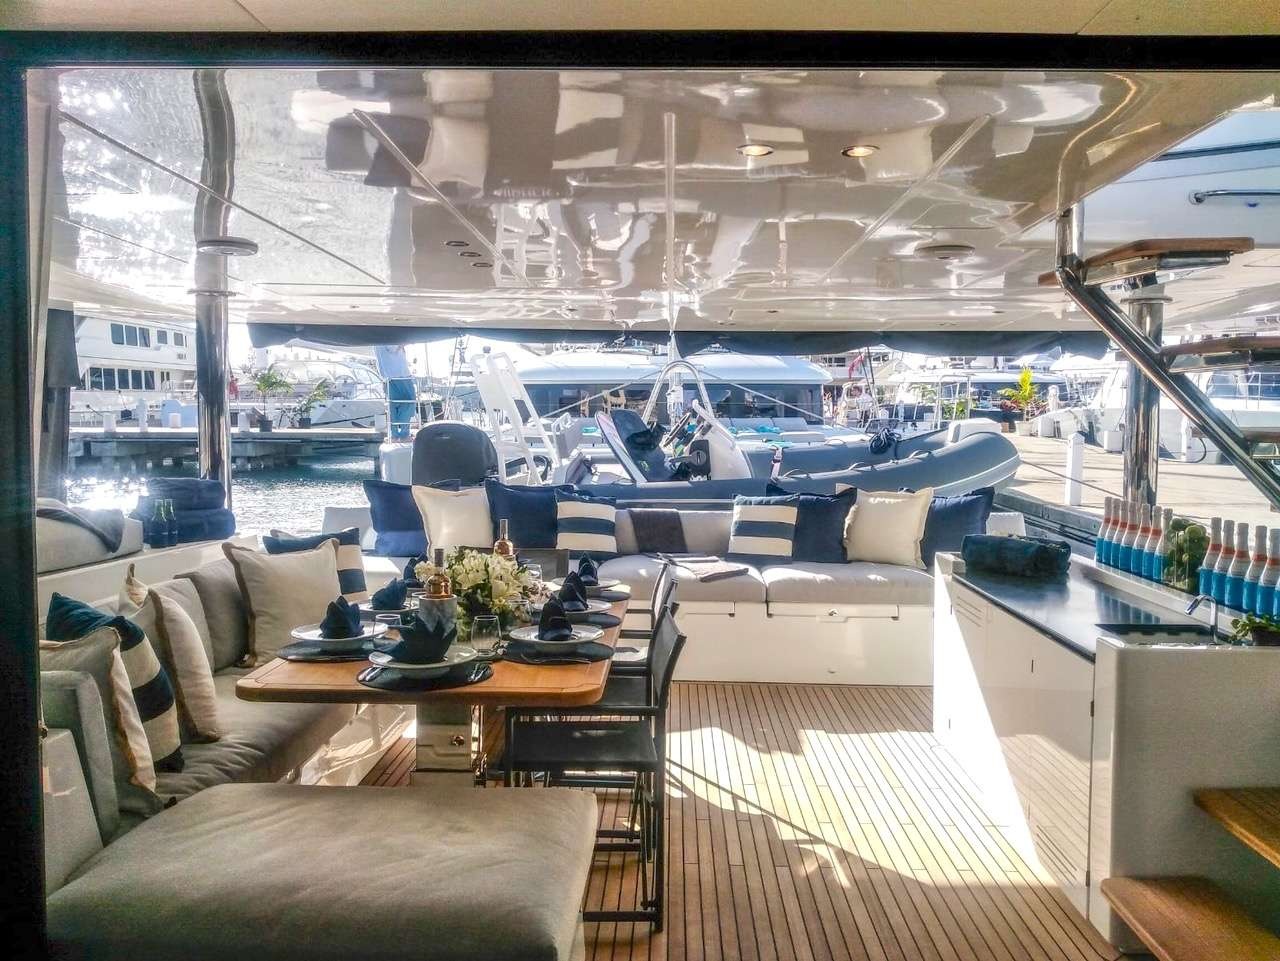 Alfresco dining on the aft deck